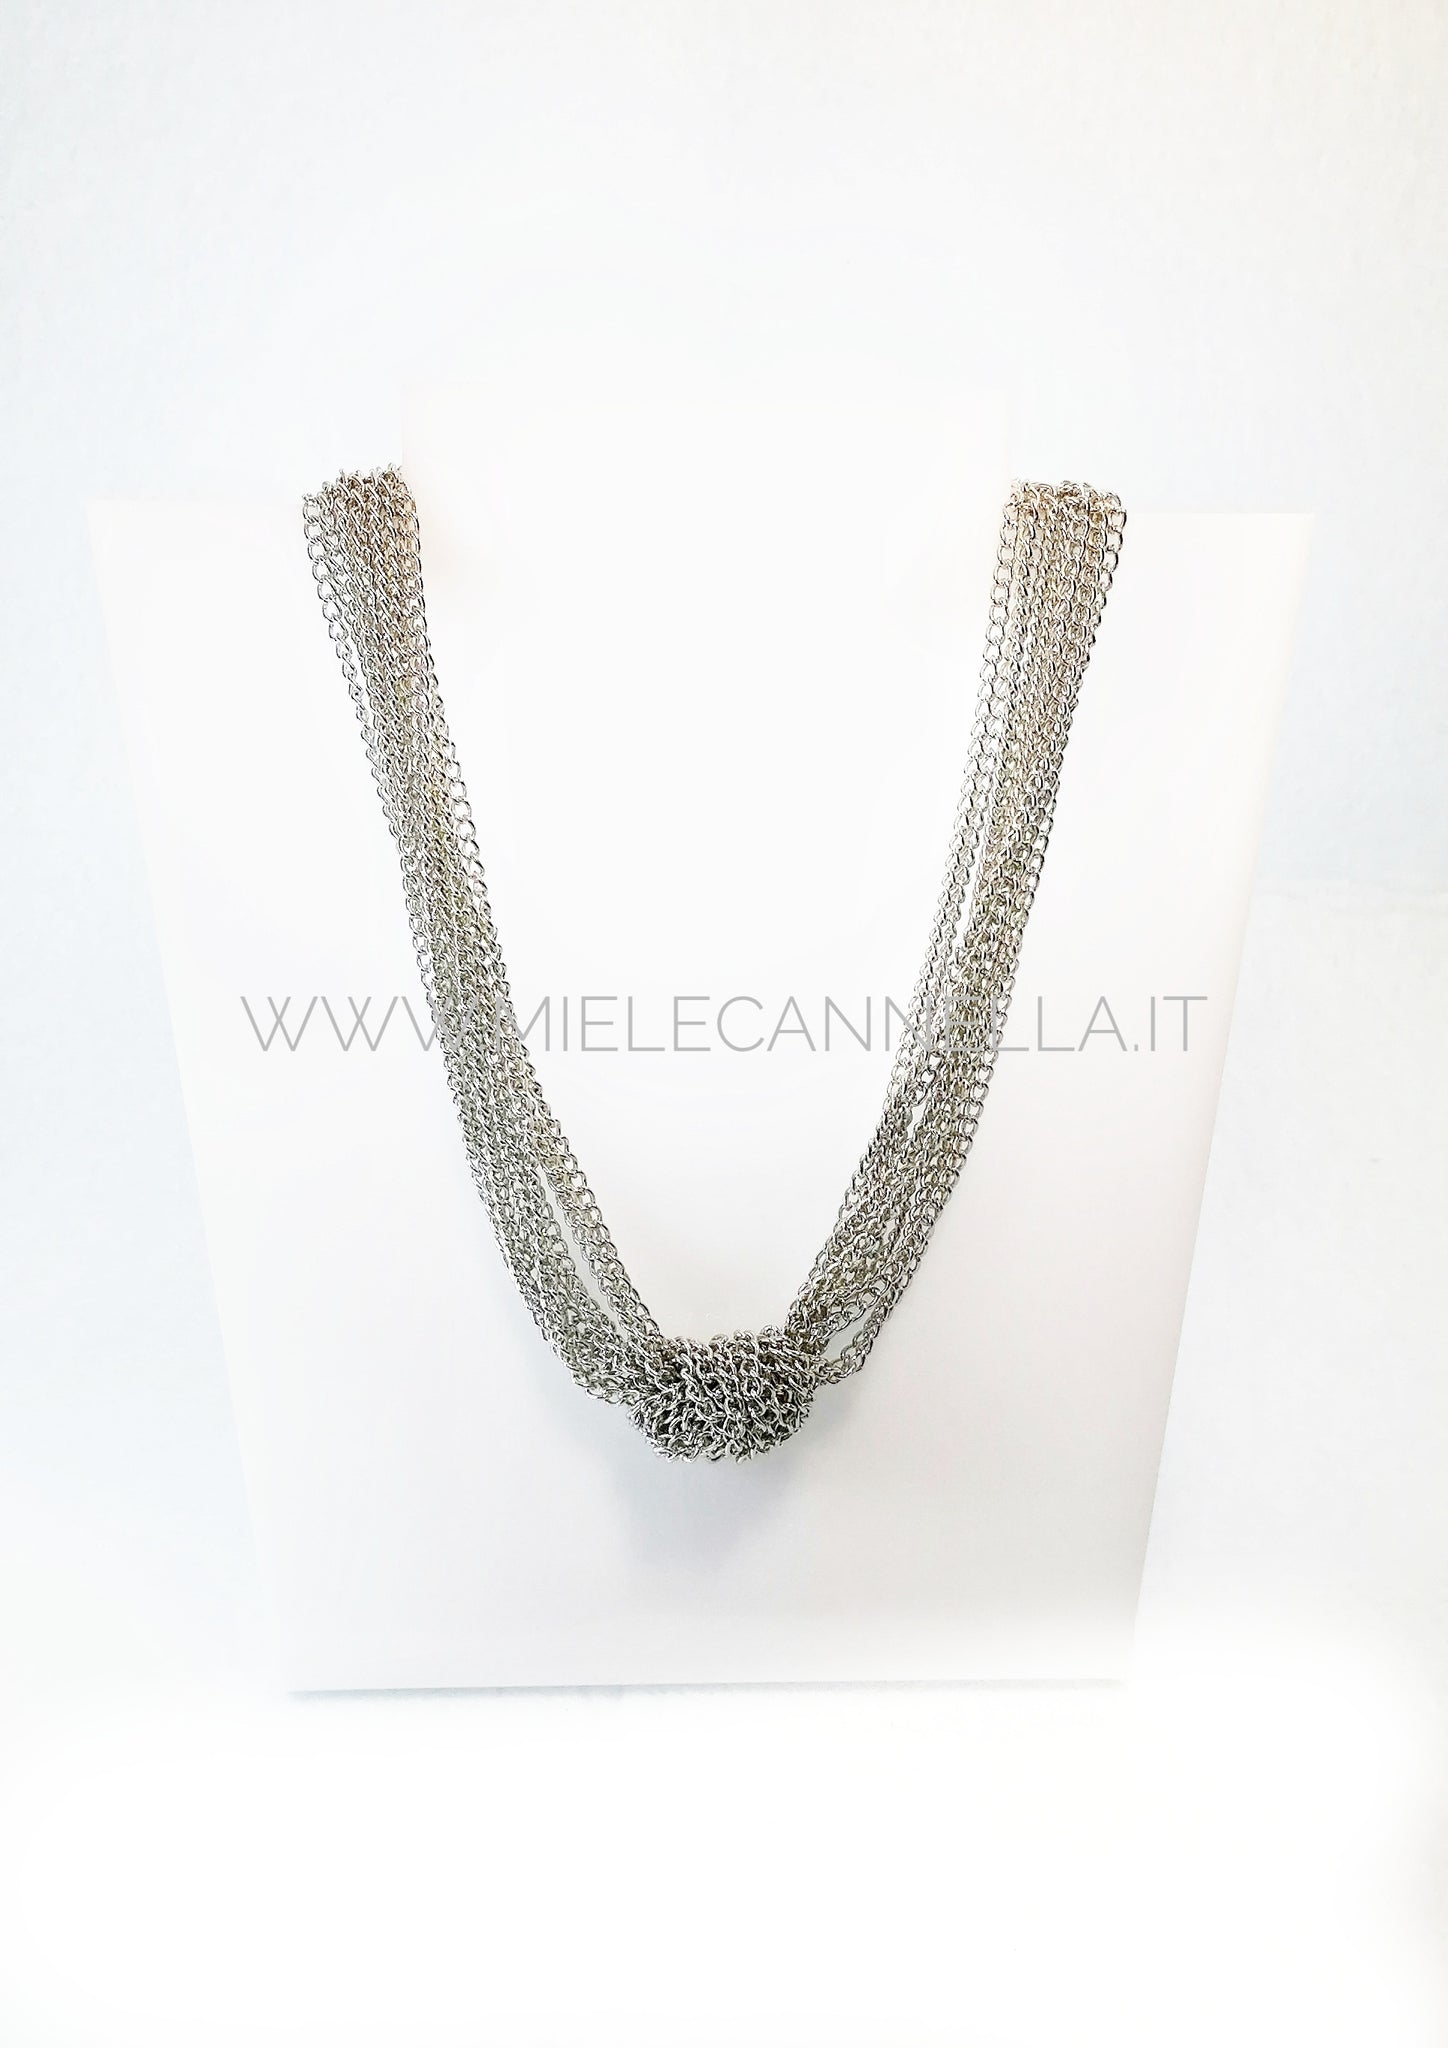 Collana in catena multifilo con nodo centrale. Nickel free - Made in Italy